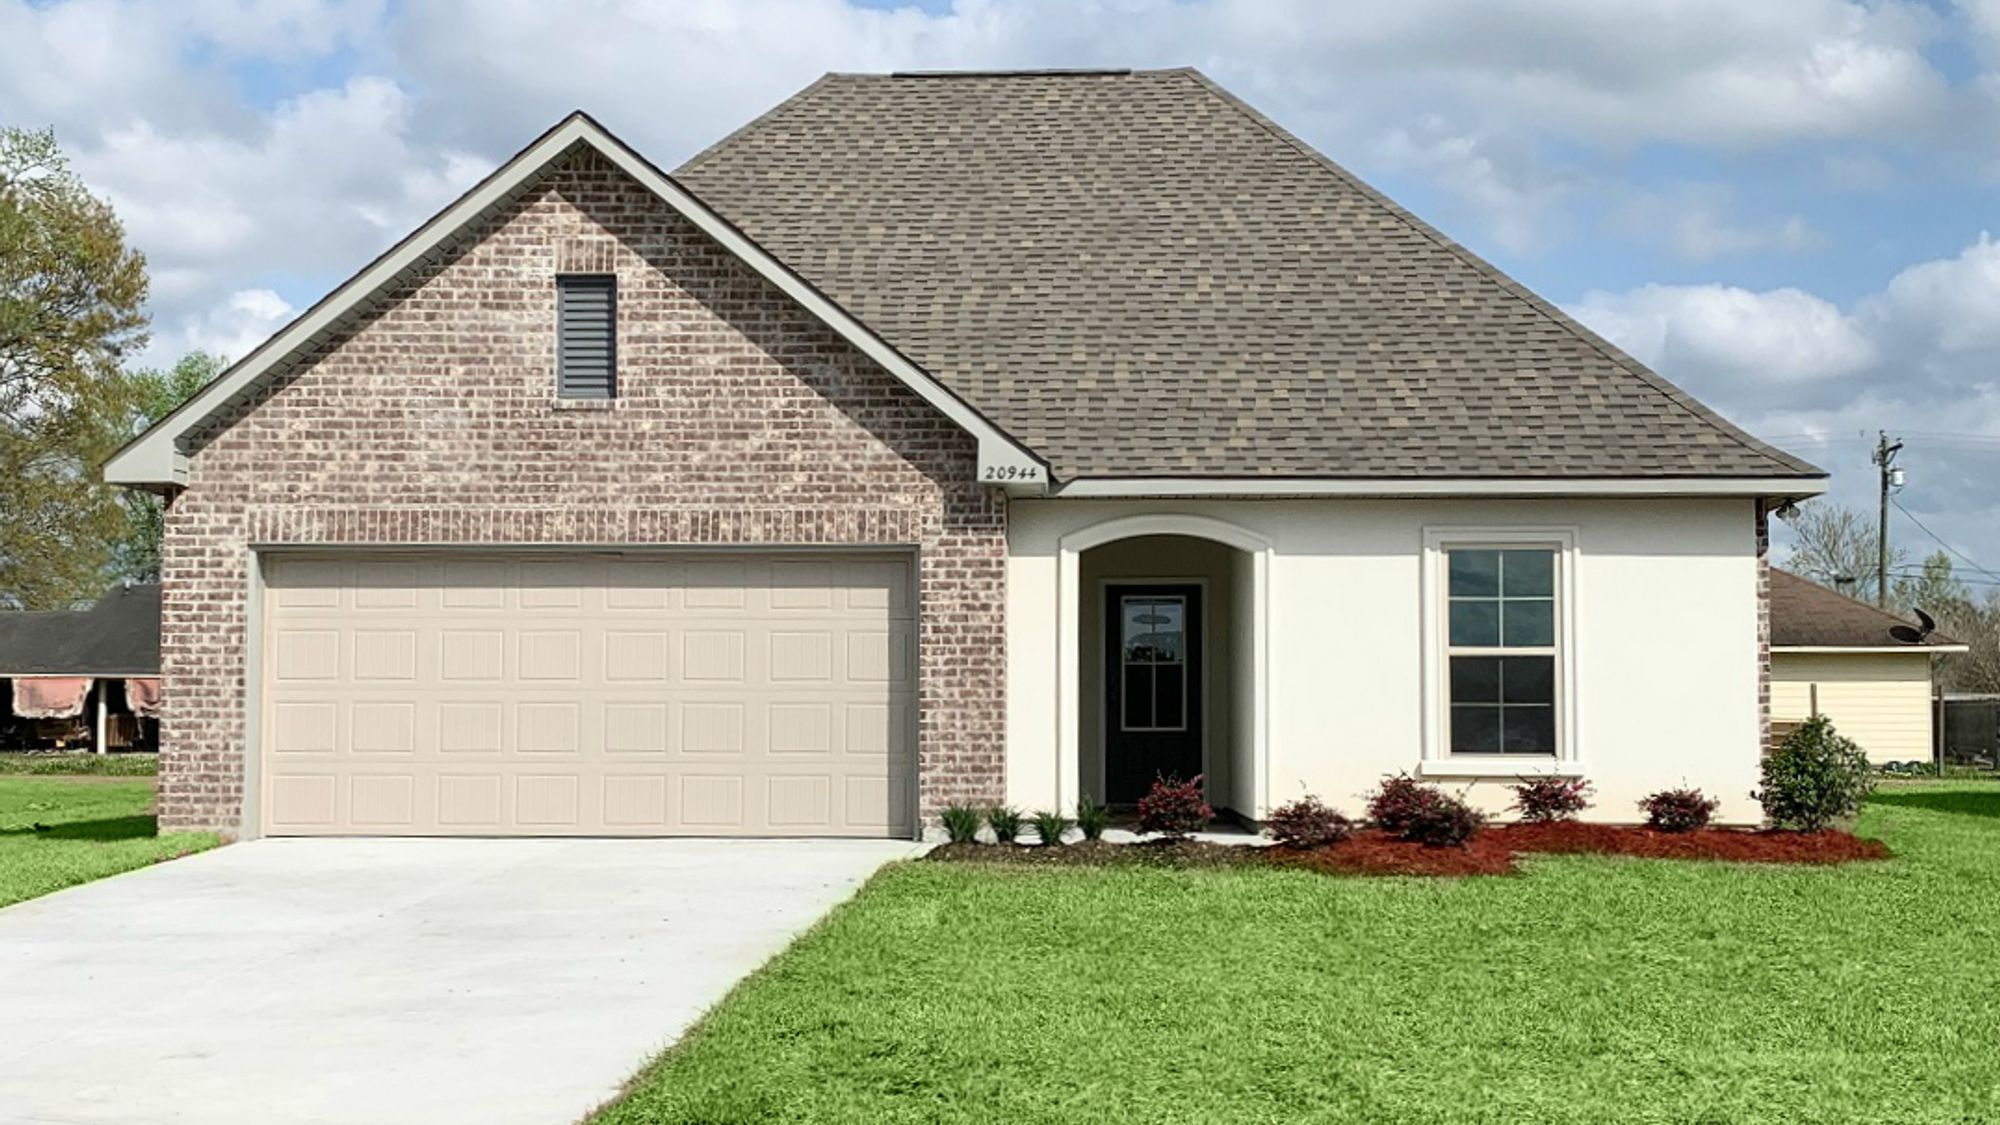 Front - Narbonne III A - Fairview Gardens Community - DSLD Homes Zachary